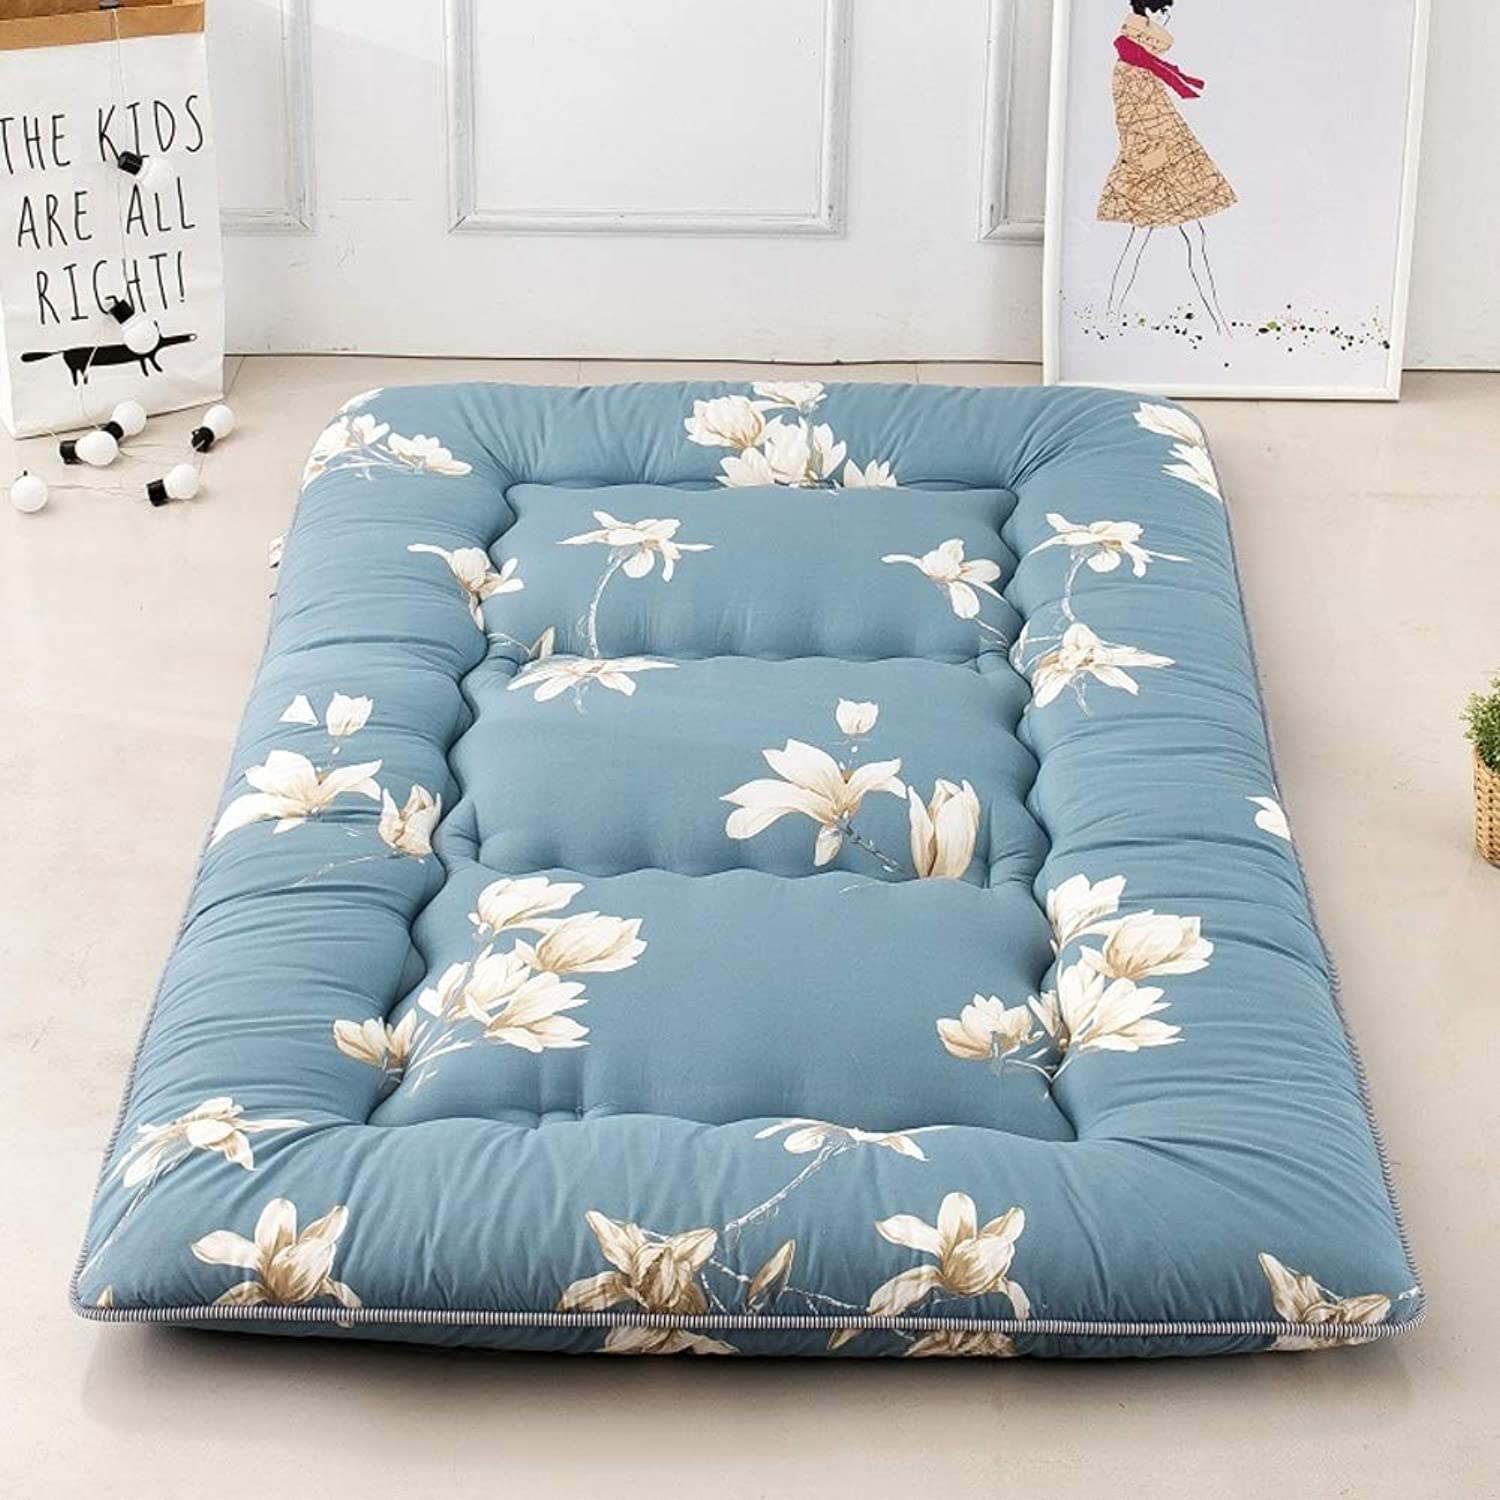 Mattress Thicken Foldable Tatami Tatami mat, Folding Mattress Floor Lounger Cover Mattress Floor Tatami Mattress (color   C, Size   180x220cm)